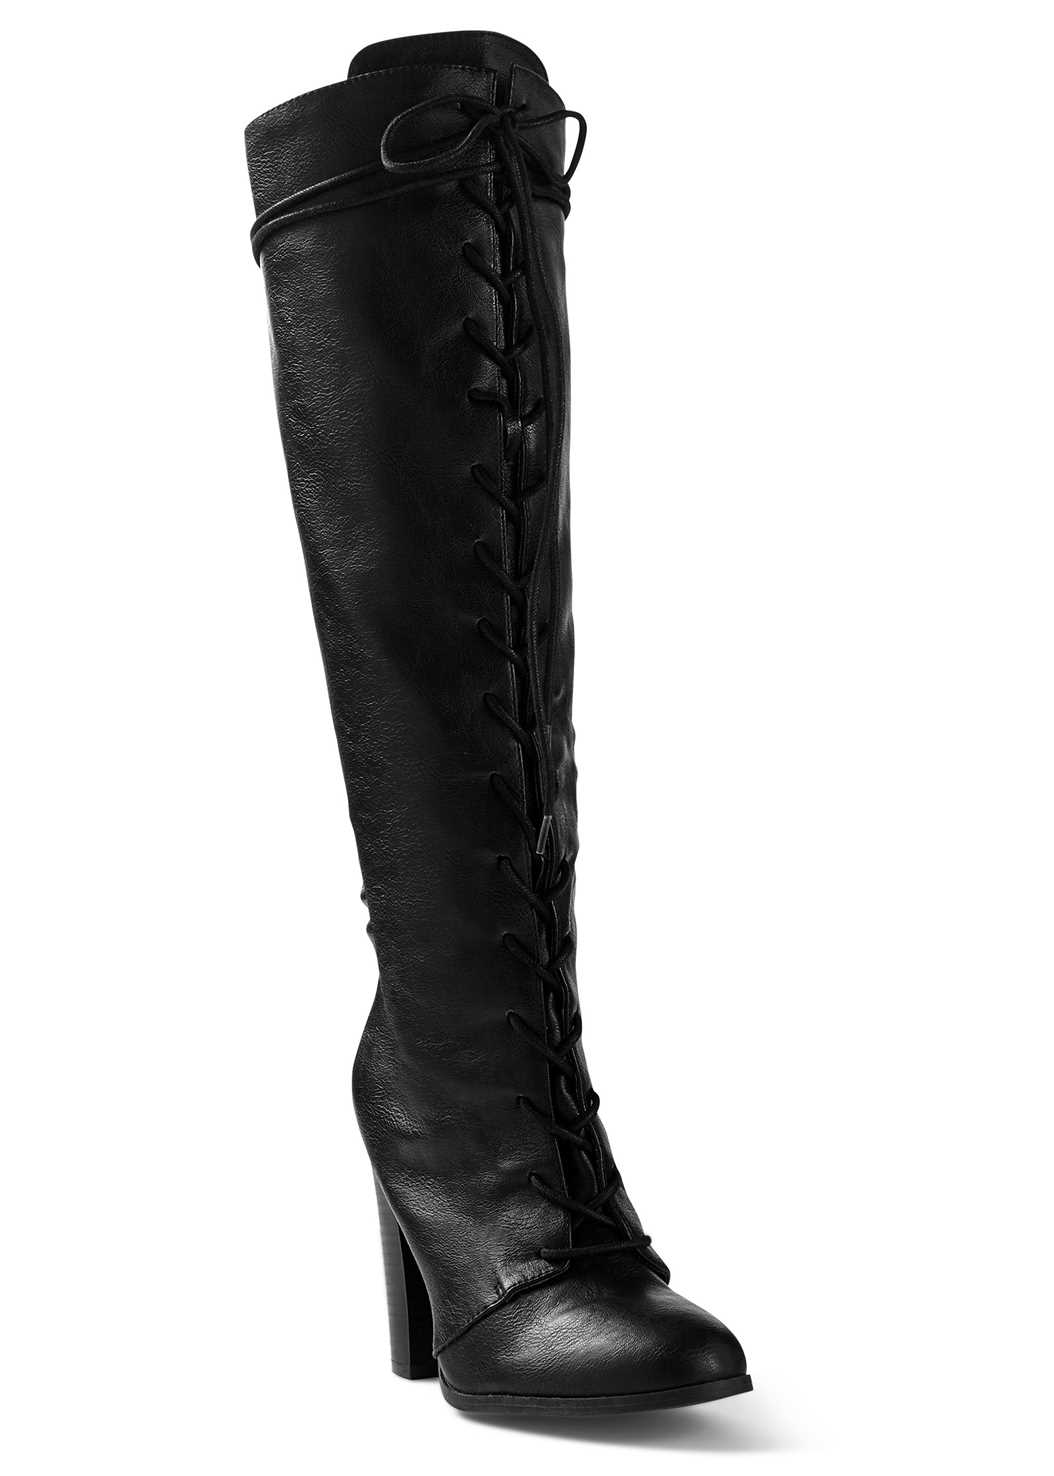 Lace Up Tall Boots,Mid Rise Slimming Stretch Jeggings